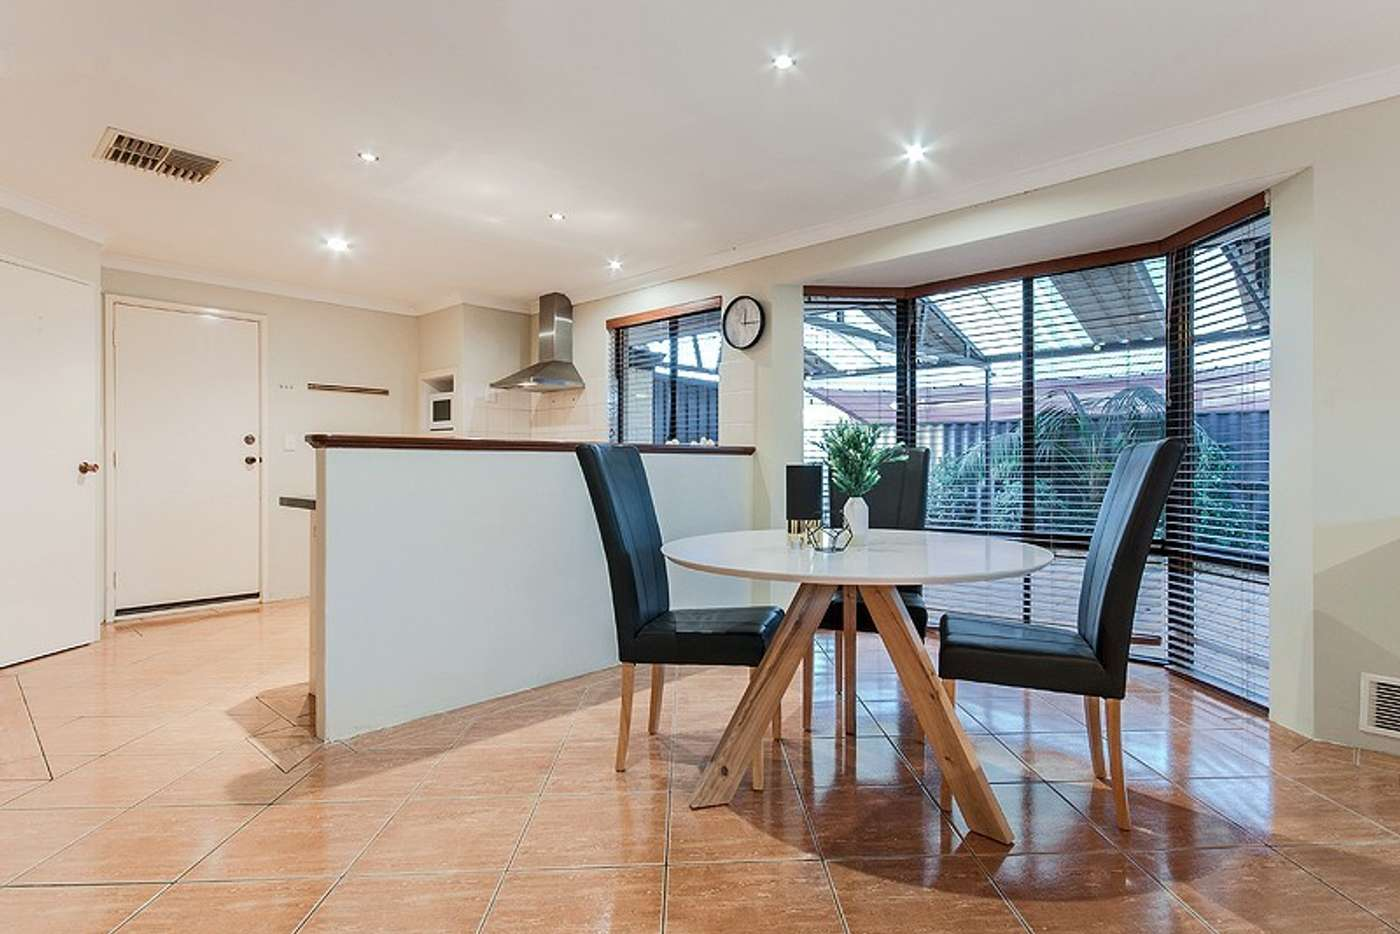 Seventh view of Homely house listing, 16 Murphy Crescent, Bertram WA 6167